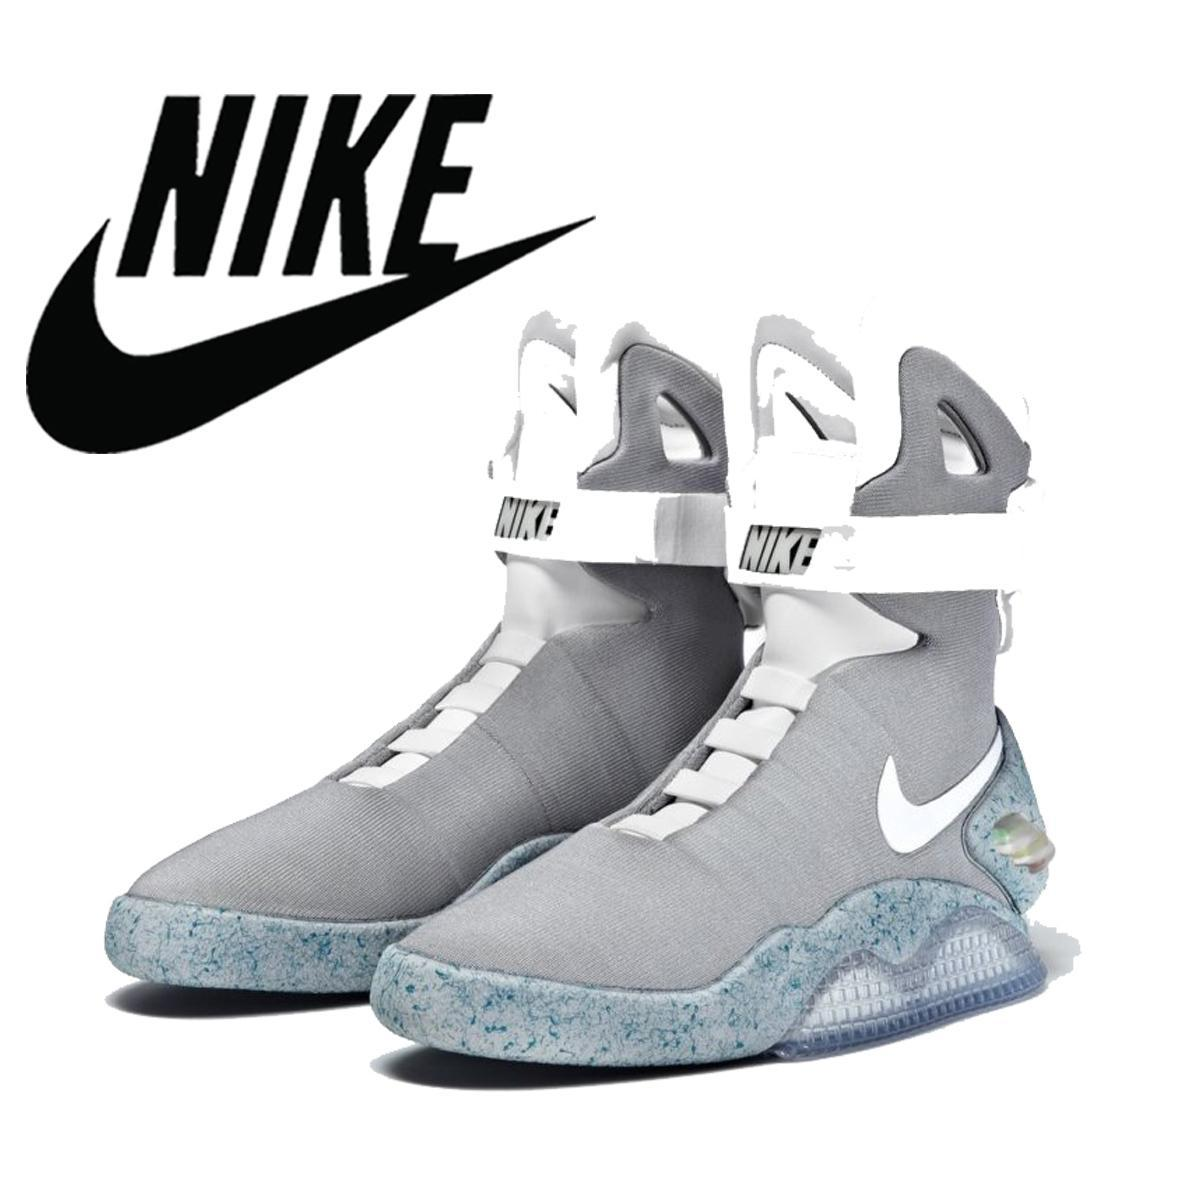 Back To The Future Shoes For Sale Cheap